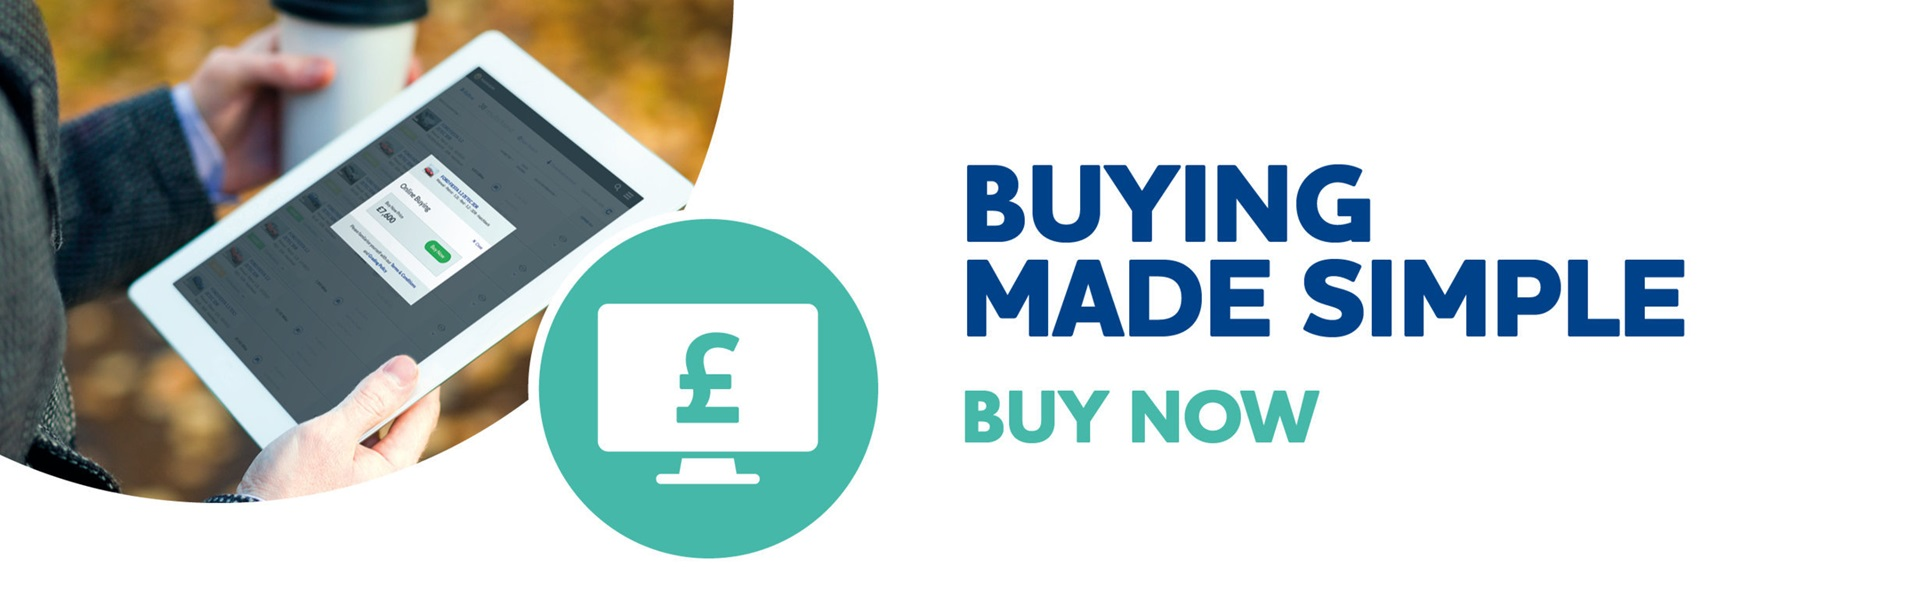 Buy vehicles simply now with Manheim